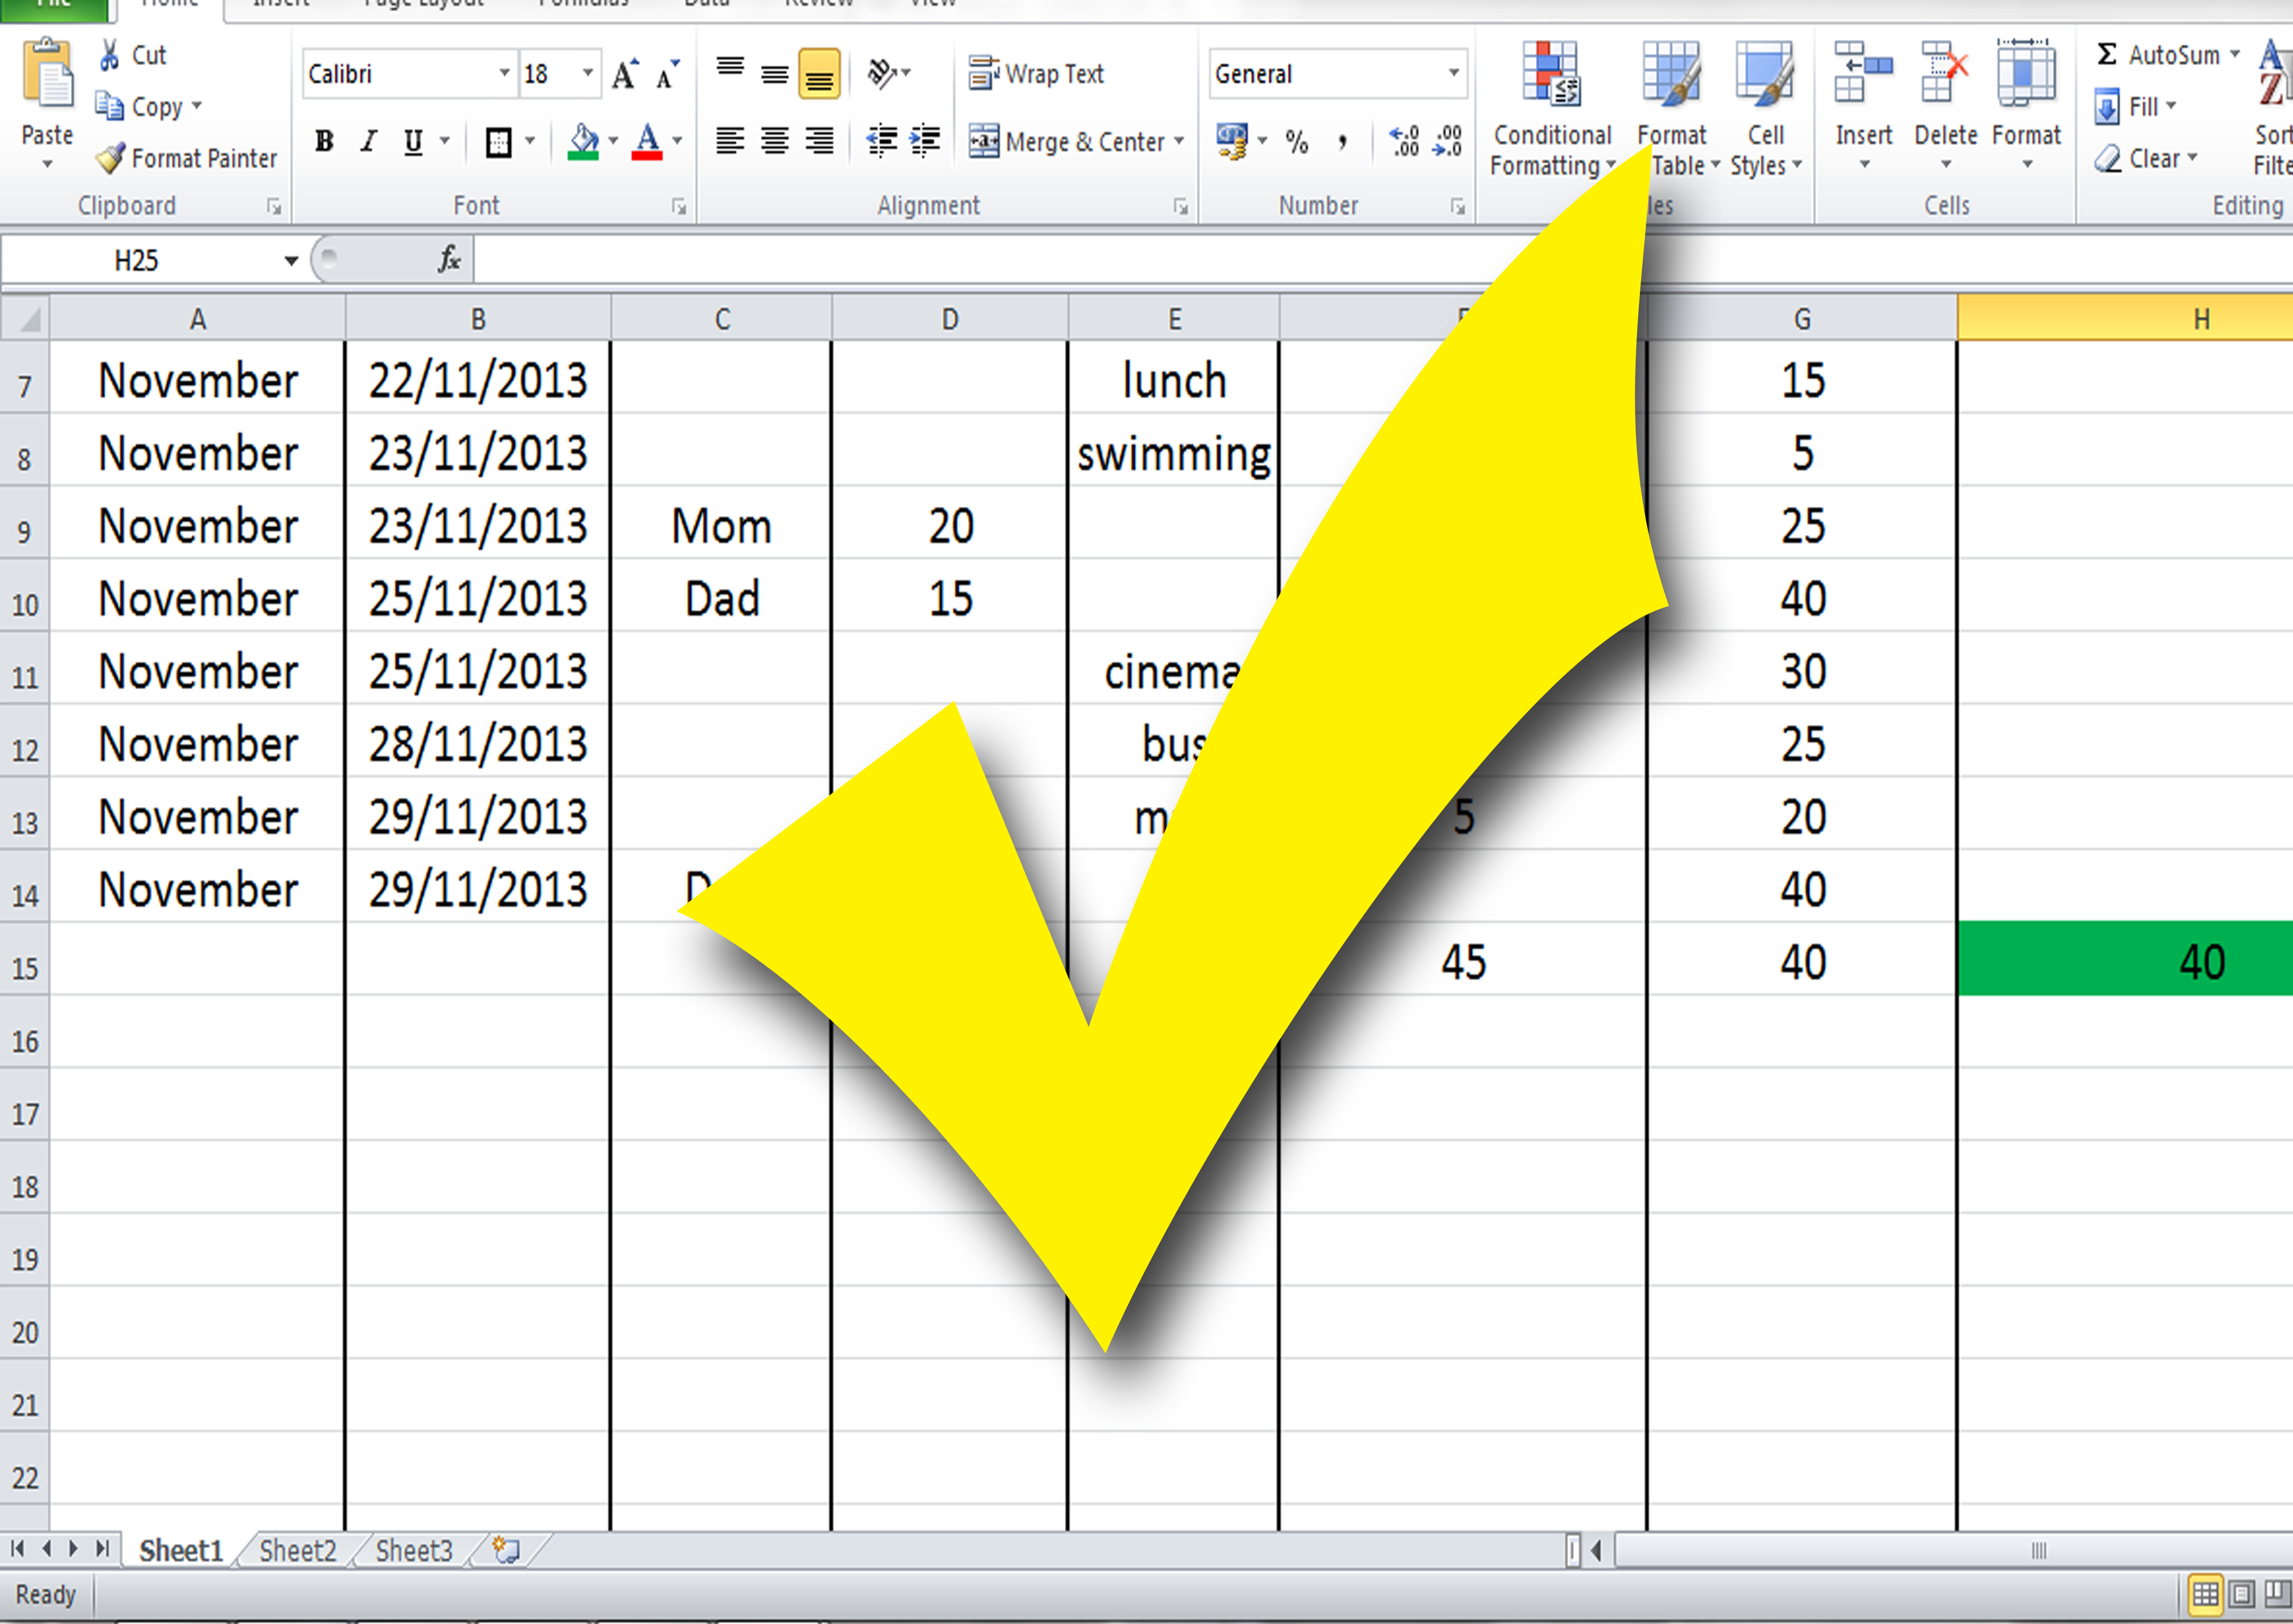 How To Setup A Personal Budget Spreadsheet In How To Build A Budget Spreadsheet Teenagers: 13 Steps